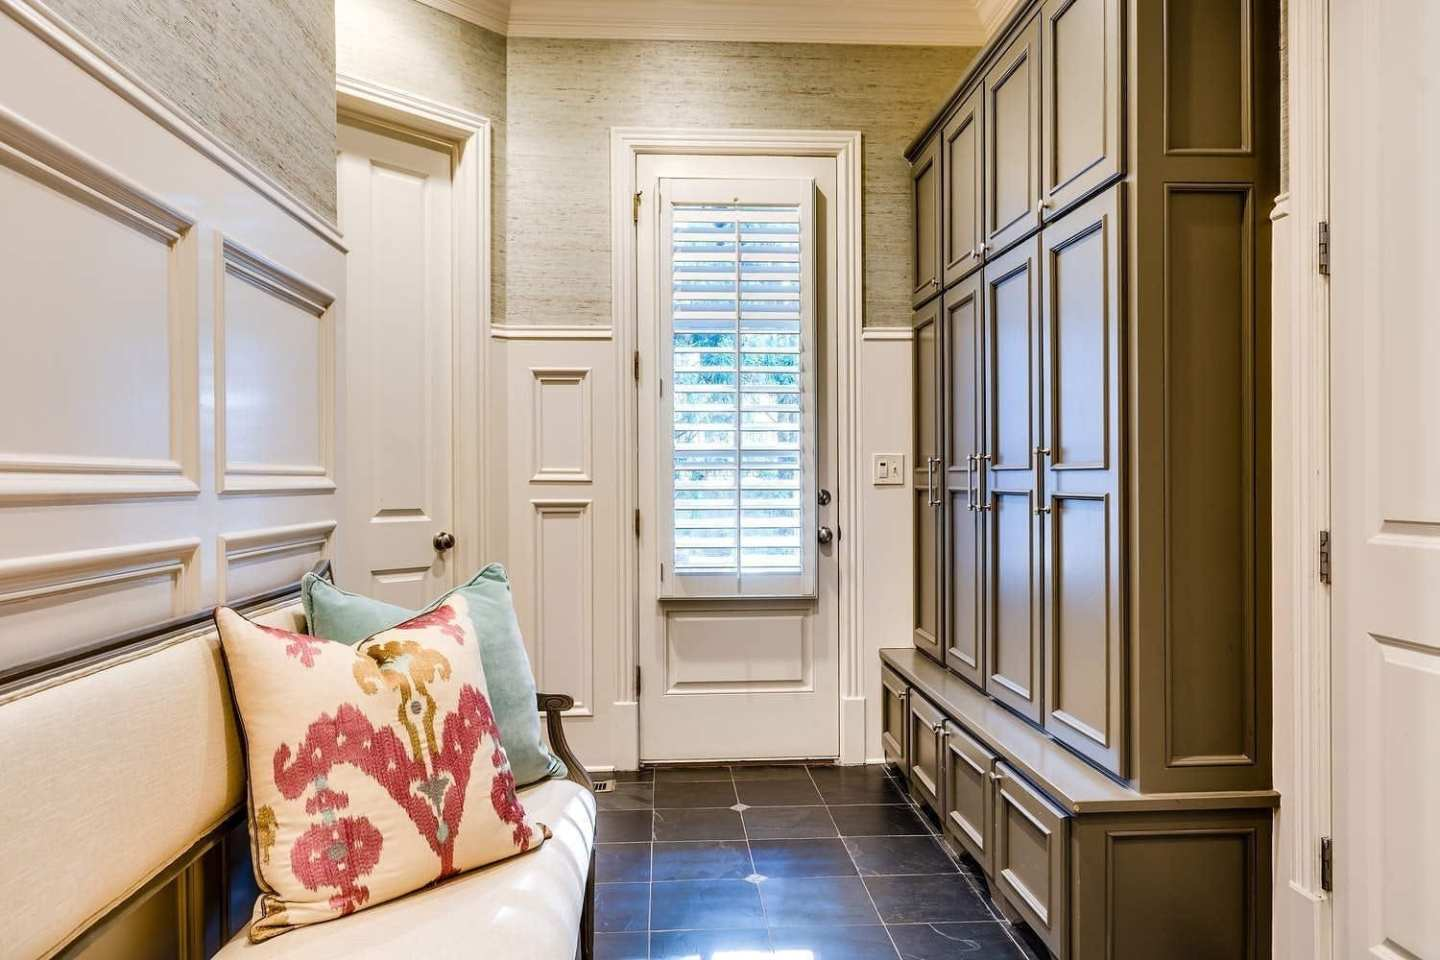 Mudroom design and mudroom built ins for easy storage for backpacks and shoes.